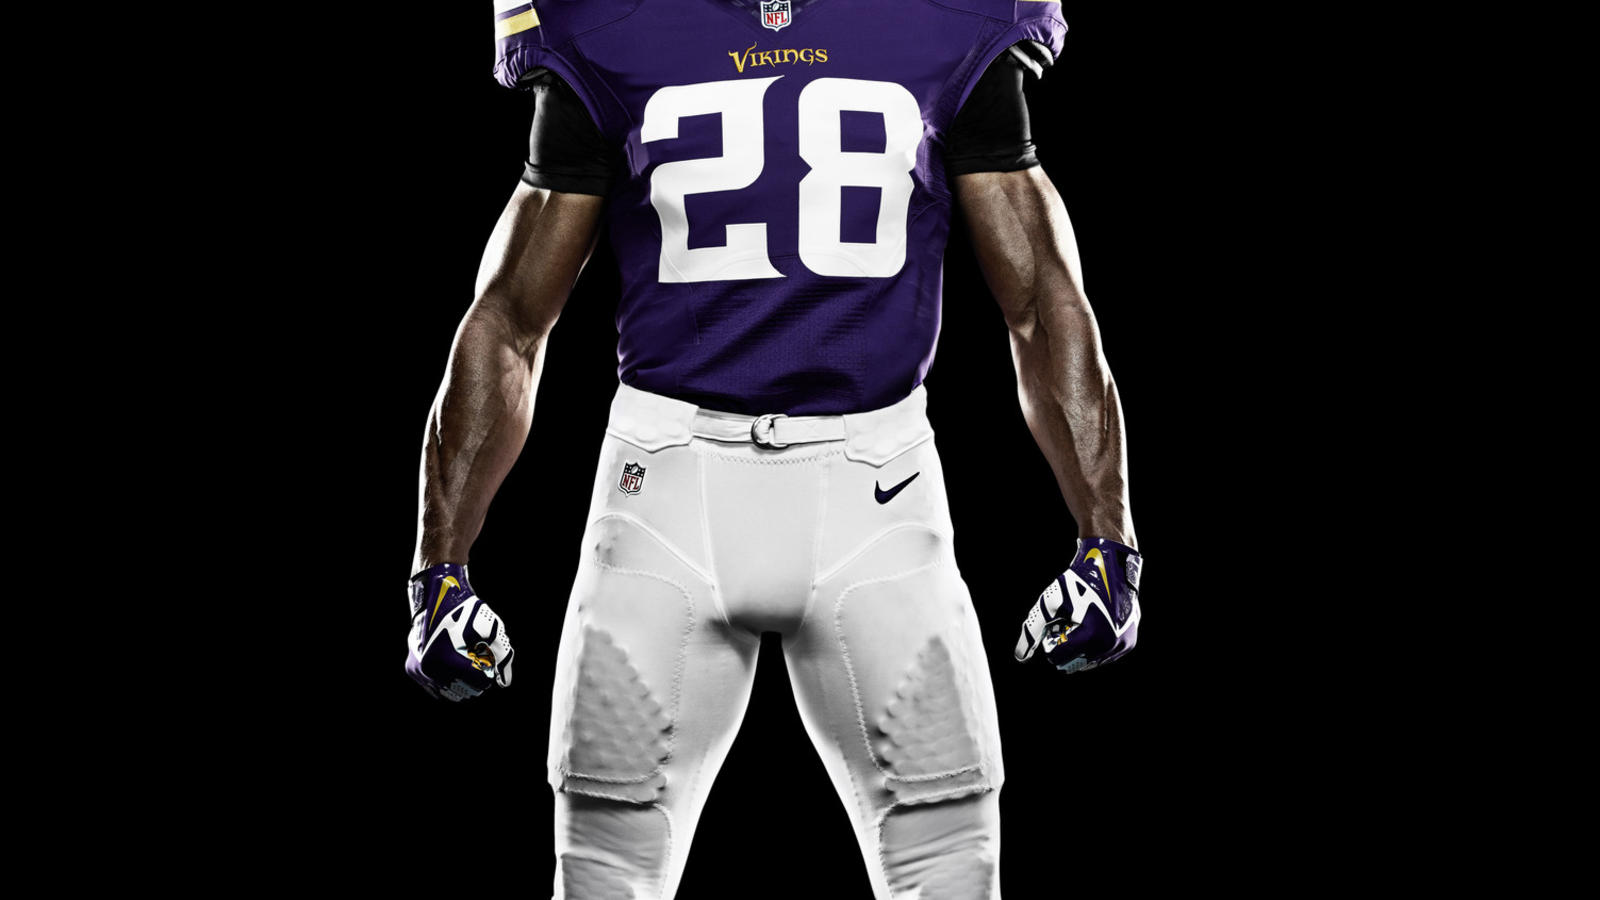 peterson-vikings-nfl-nike-elite-51-uniform-front-3